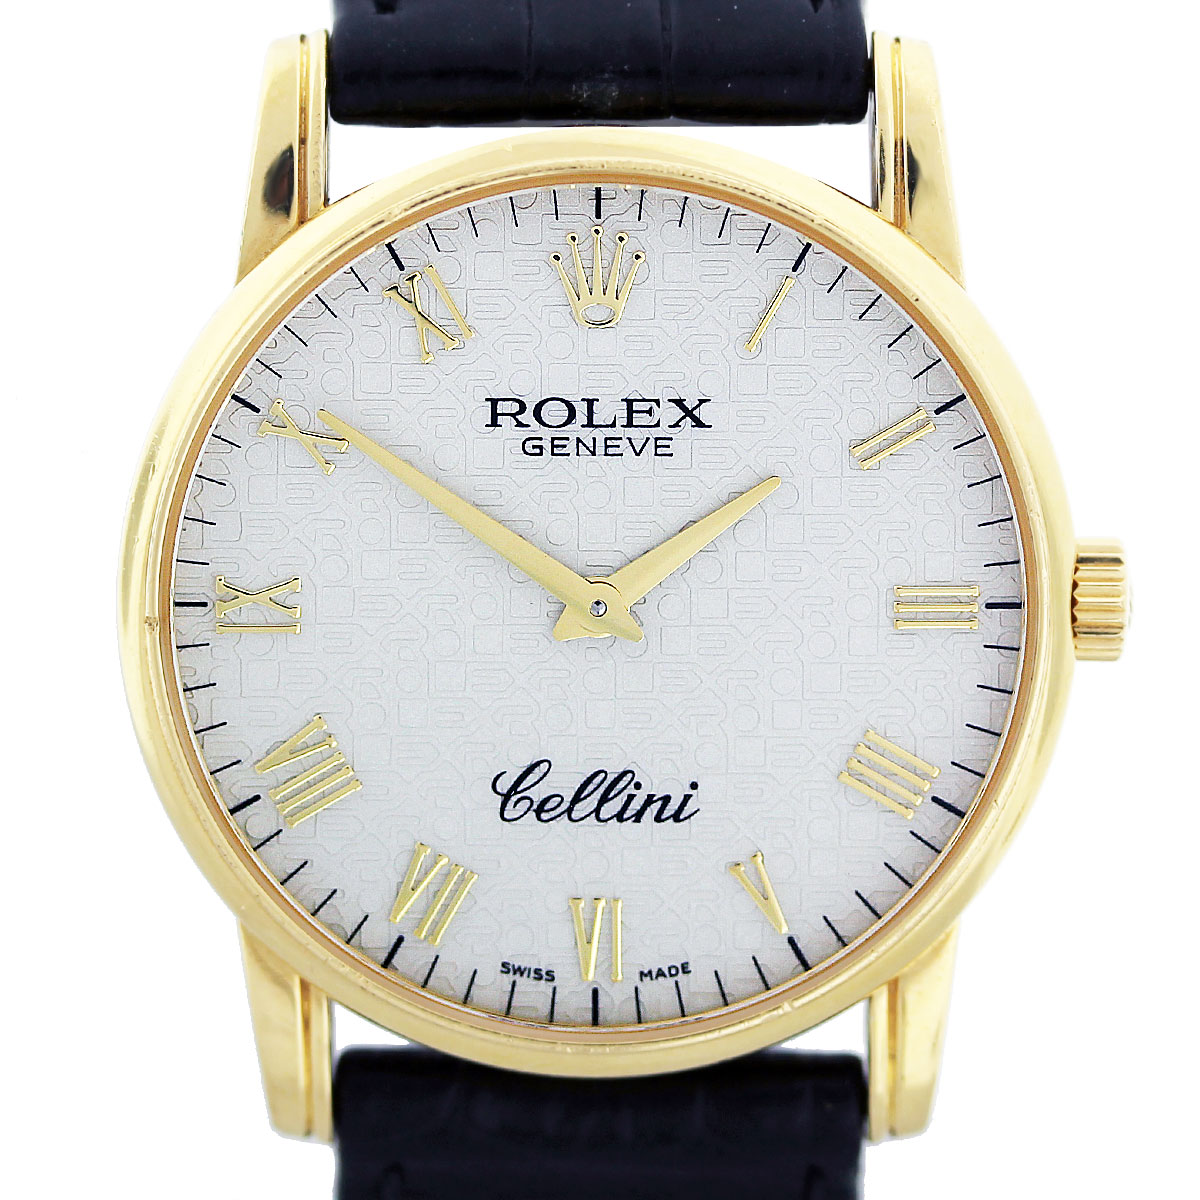 Rolex cellini 5116 18k yellow gold jubilee dial watch for Rolex cellini